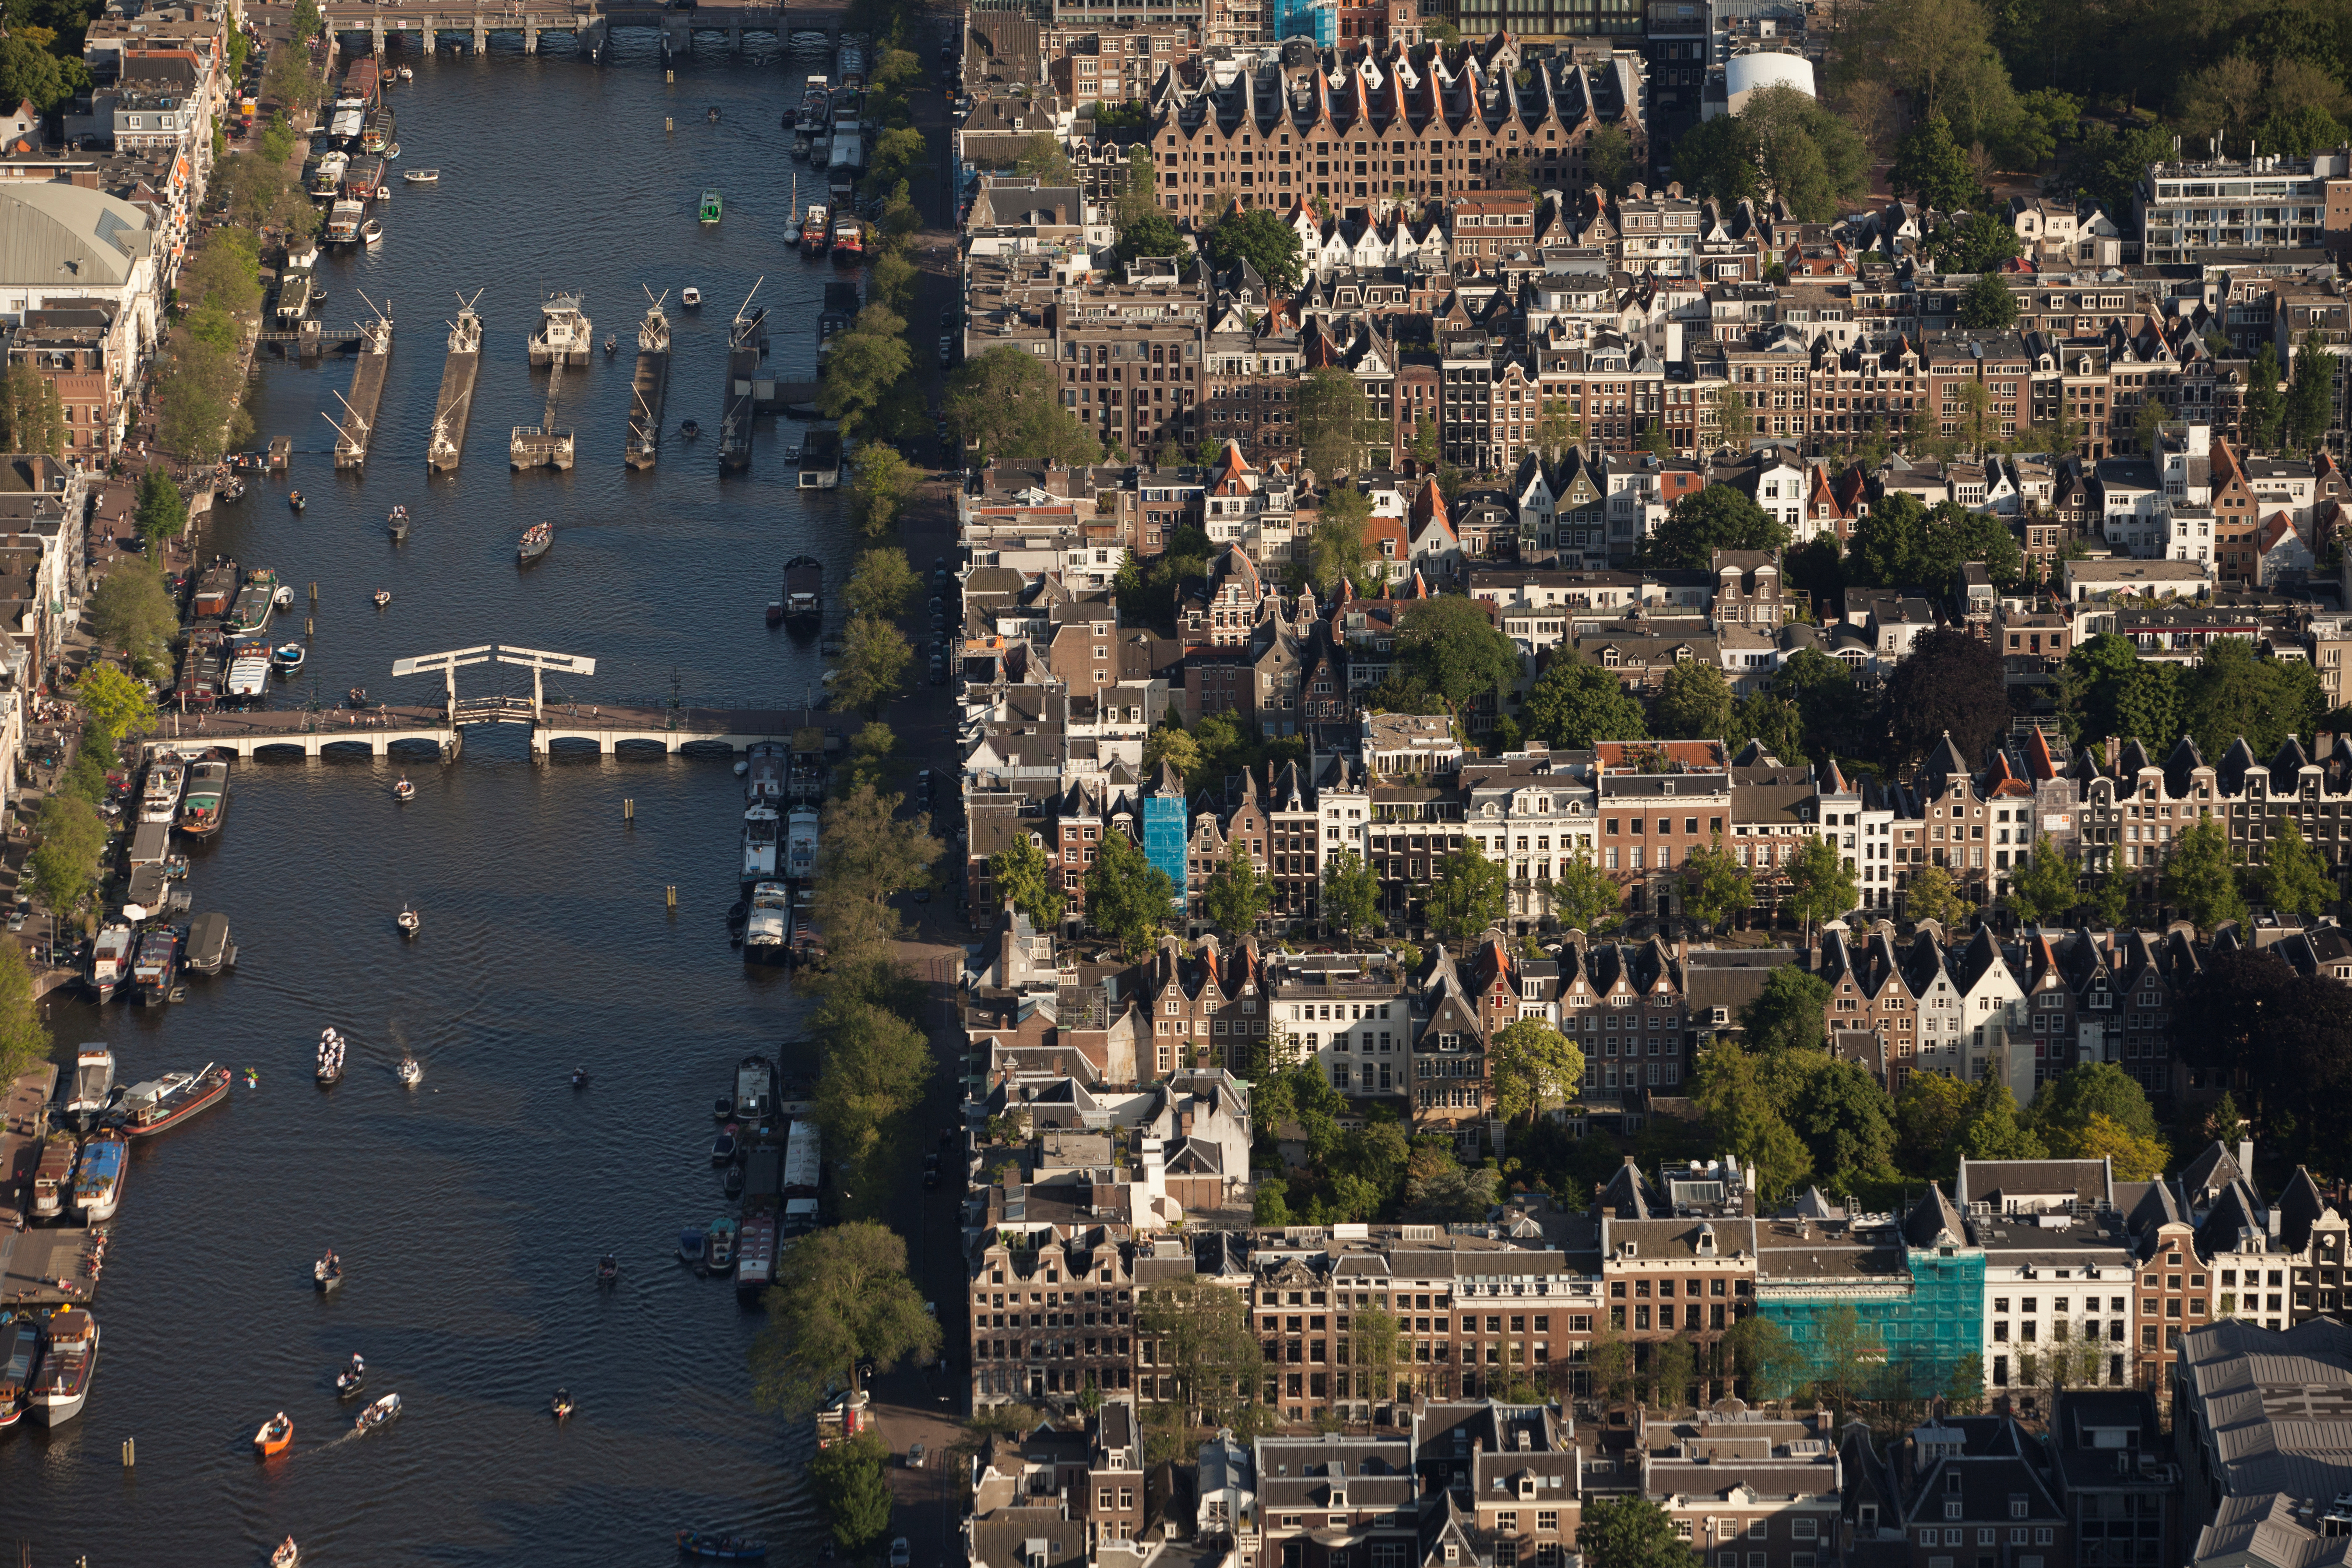 The Amstel river is pictured in this aerial shot of Amsterdam, Netherlands, June 14, 2017. REUTERS/Cris Toala Olivares